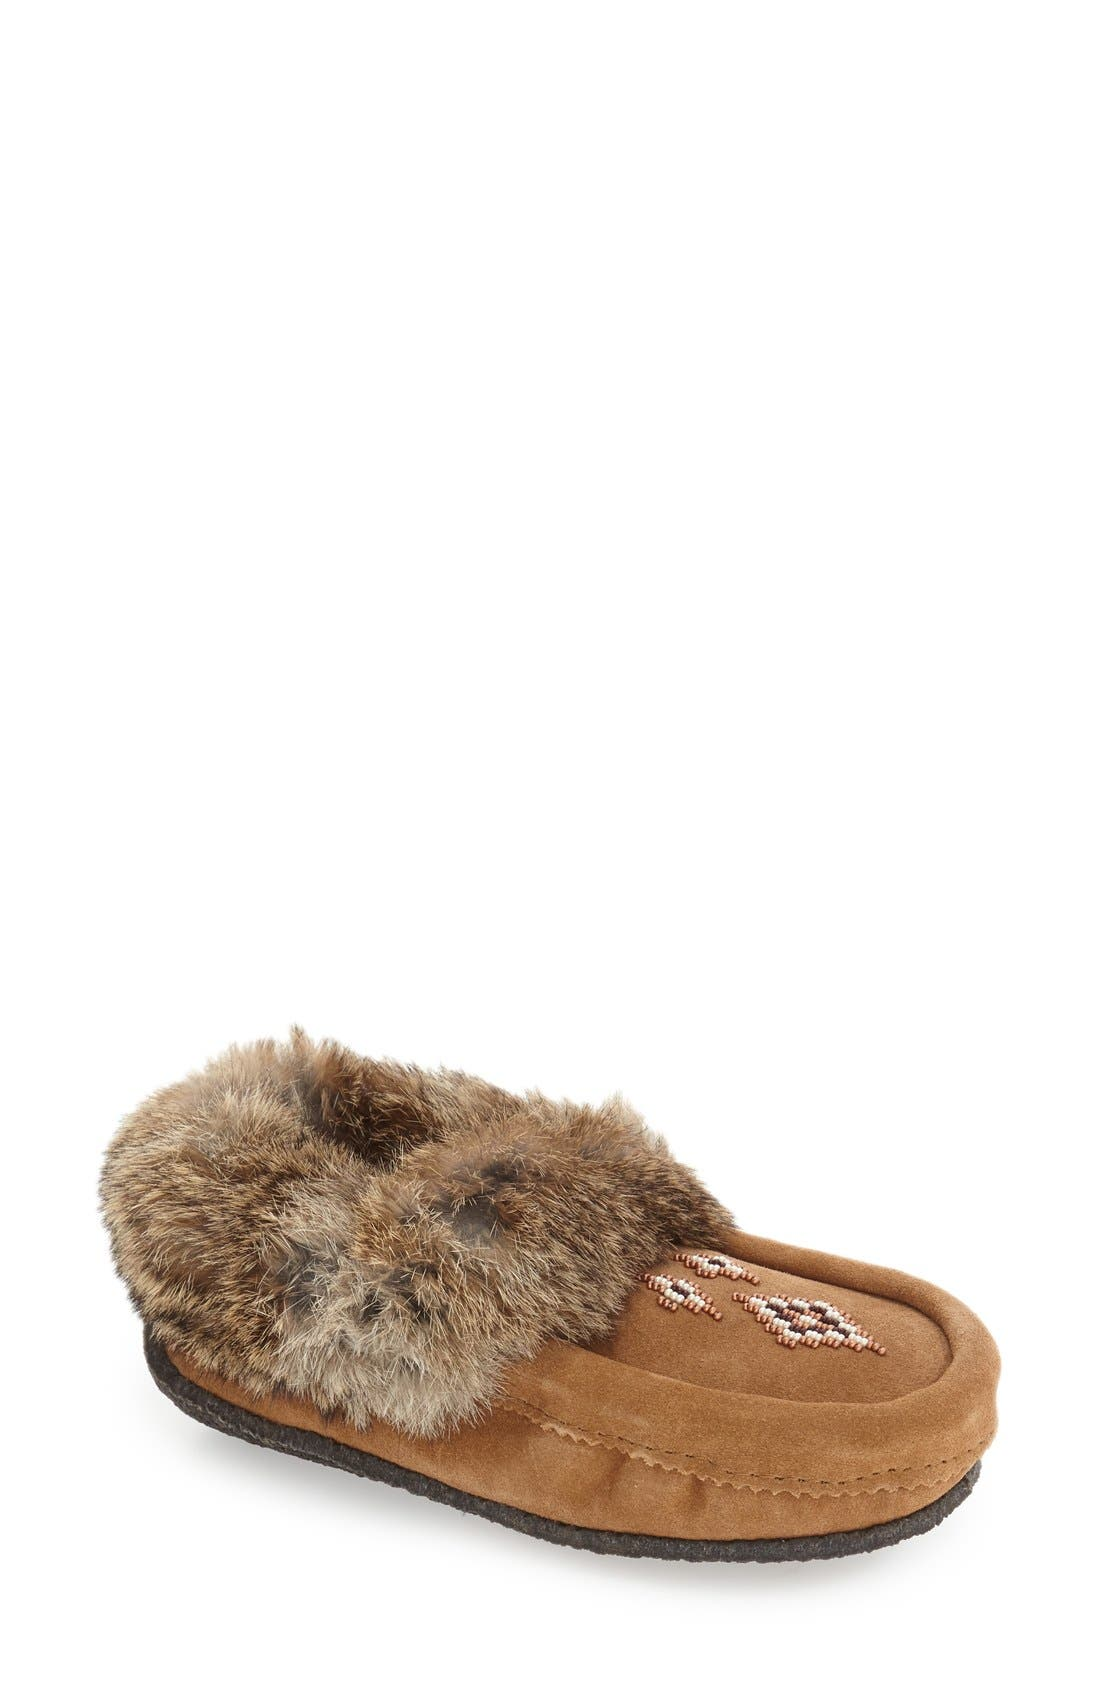 Genuine Shearling and Rabbit Fur Mukluk Slipper,                         Main,                         color, OAK RABBIT FUR SUEDE